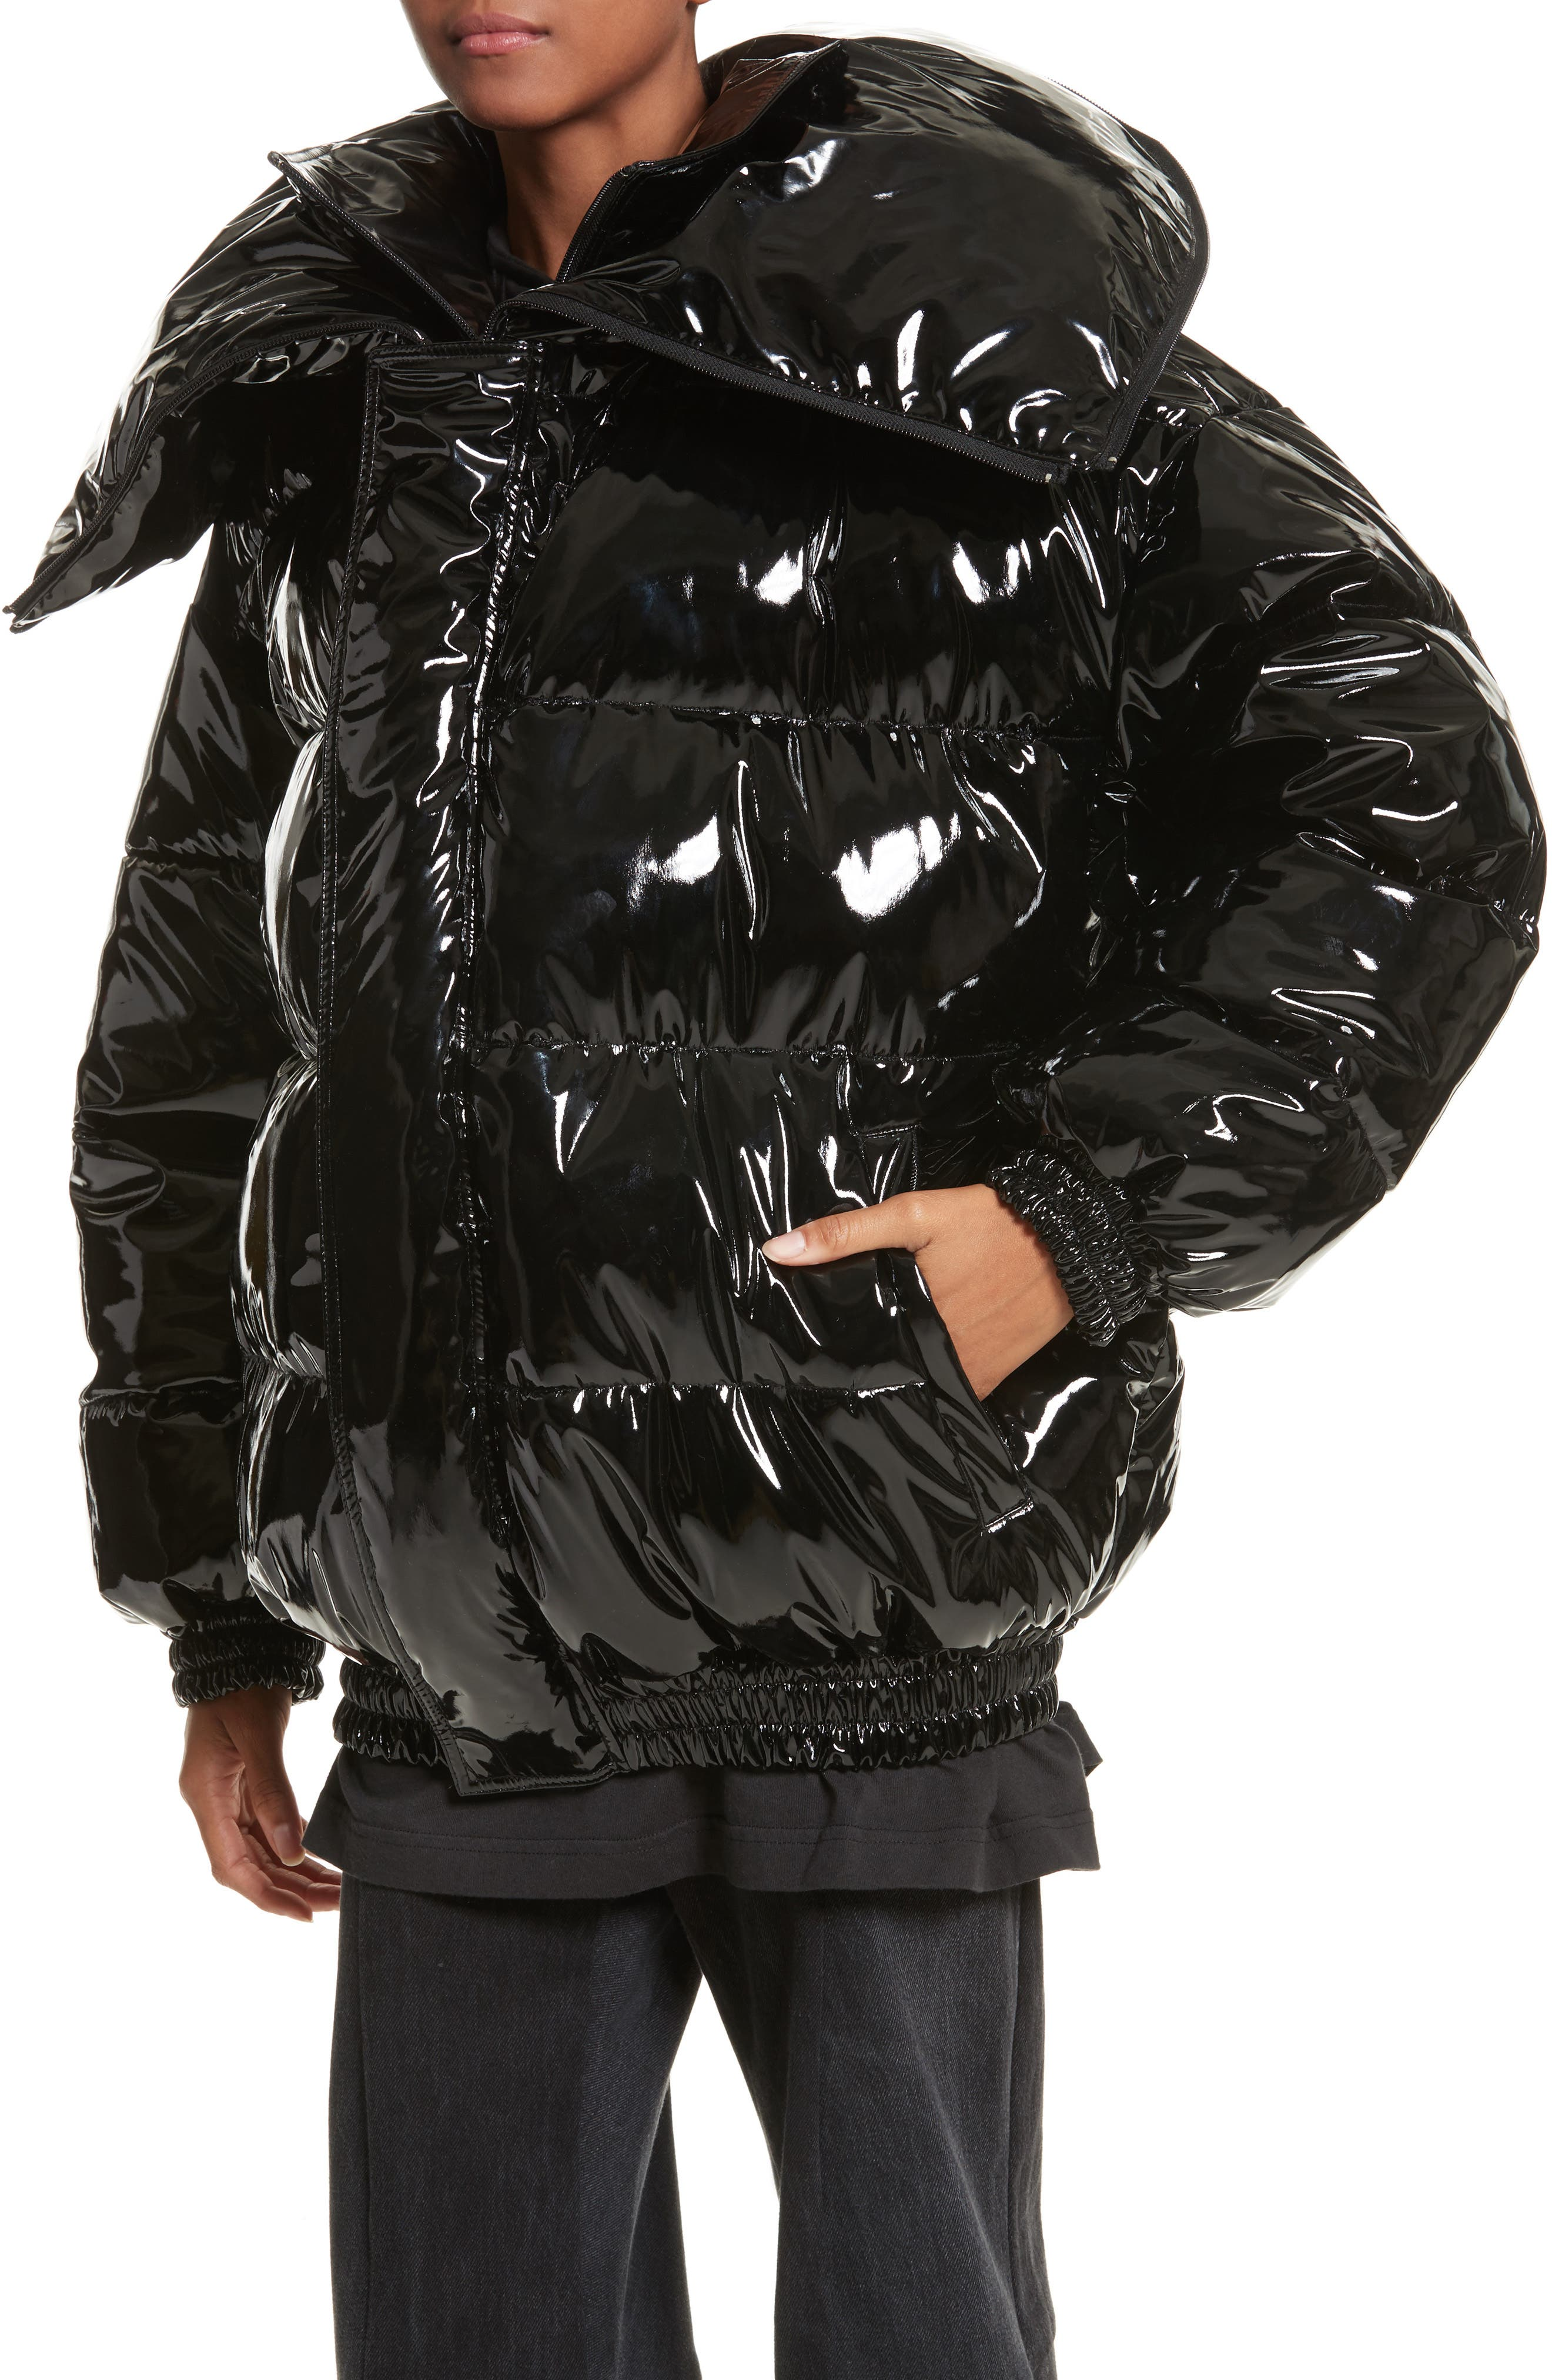 Miss Webcam Puffer Jacket,                             Alternate thumbnail 4, color,                             Black